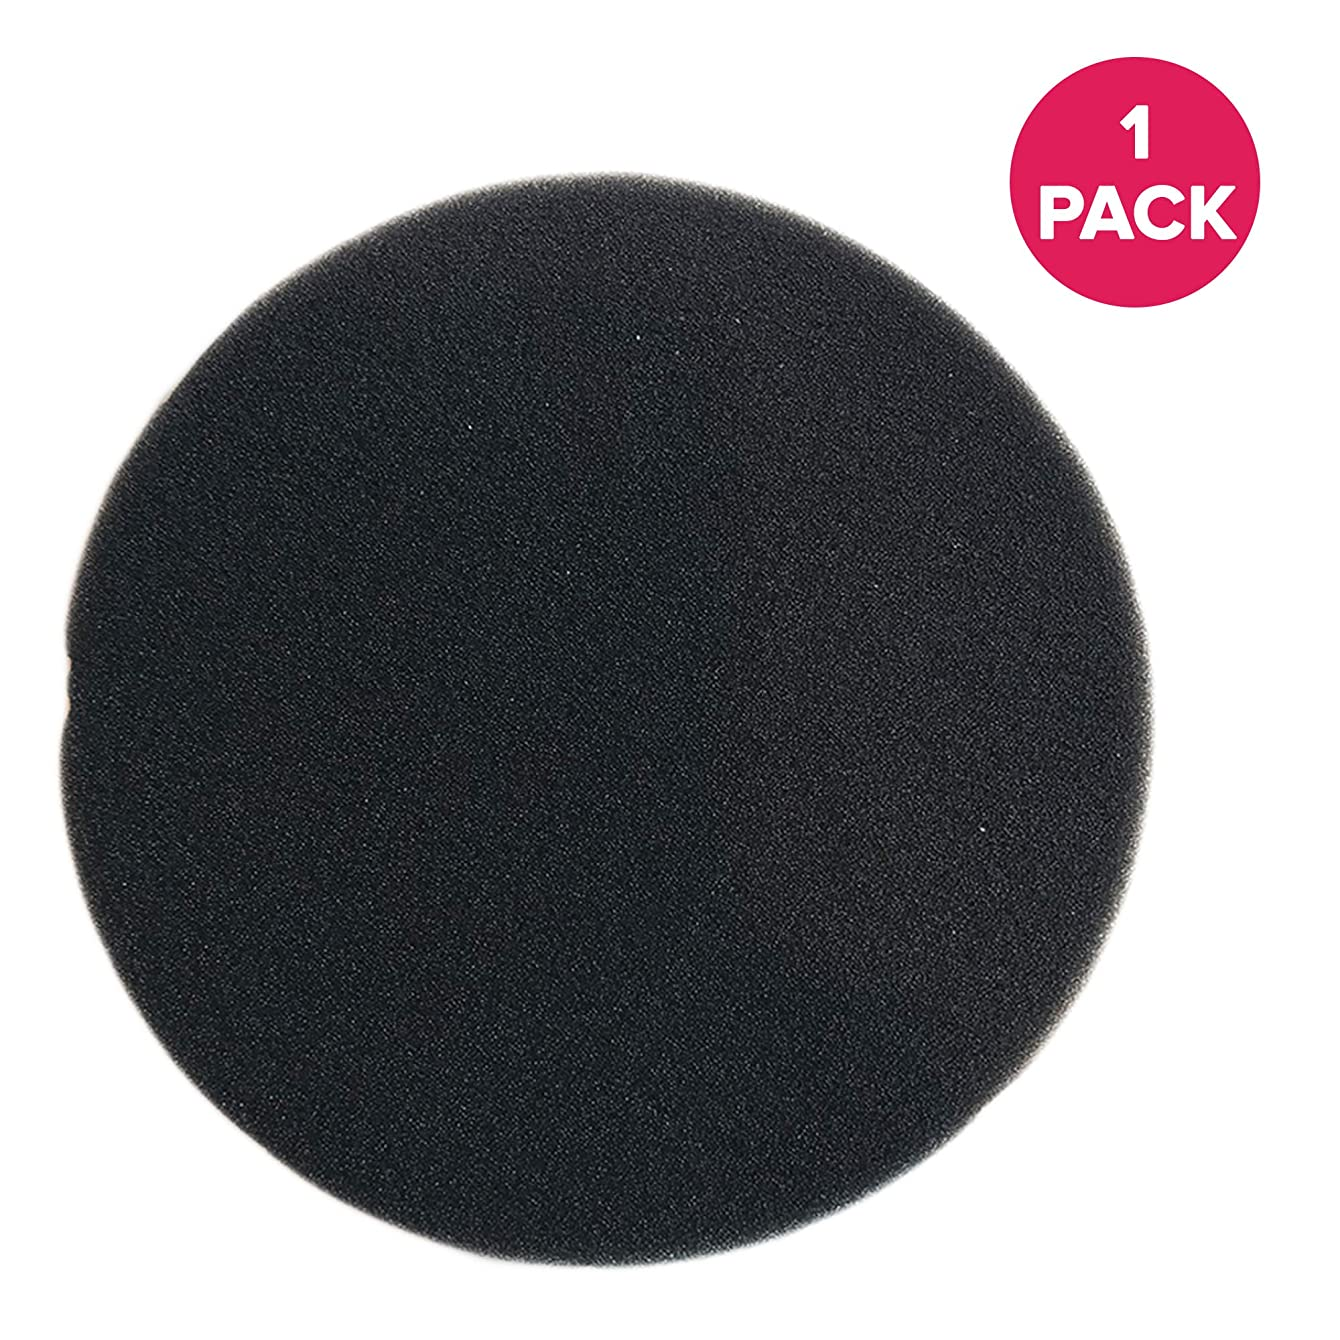 Think Crucial Replacement for Eureka DCF-26 Foam Filter Fits AirSpeed ONE, AirSpeed Zuum, & PowerGlide, Compatible With Part # 090190 & 68465